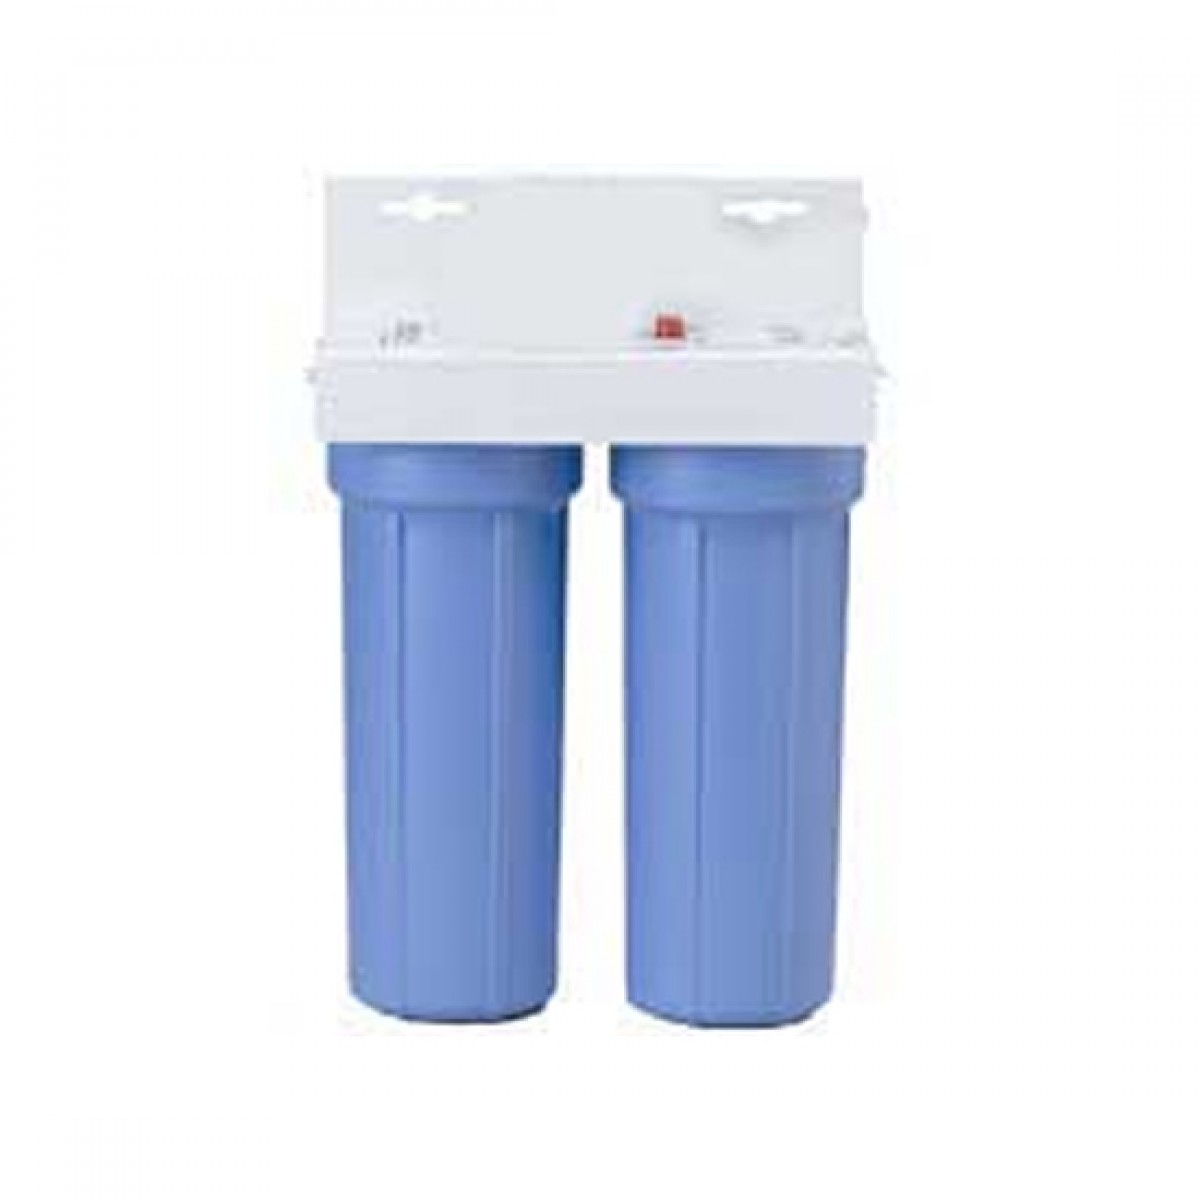 Line Water Filter Bfs 201 Two Slim Line Housing Water Filtration System